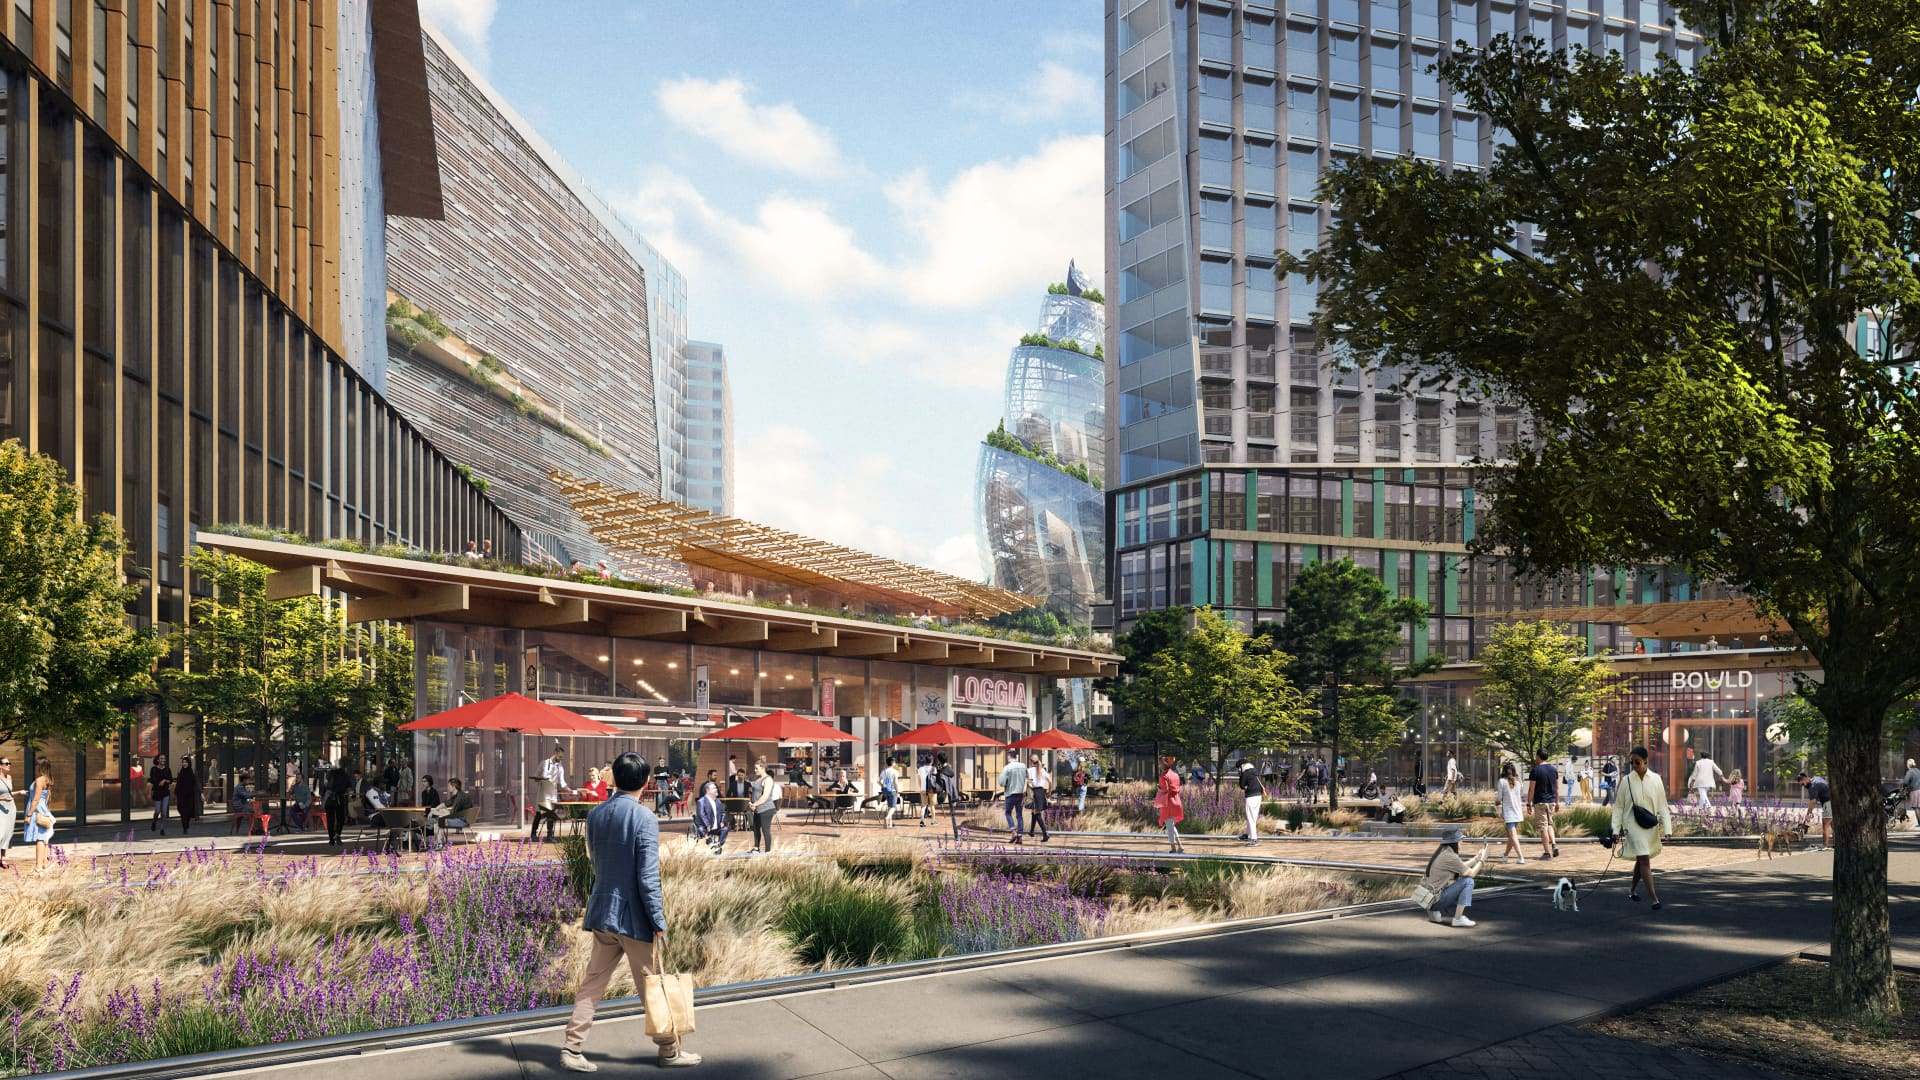 The project plans include three retail pavilions to feature space for restaurants, shops, outdoor eating and gathering spaces.